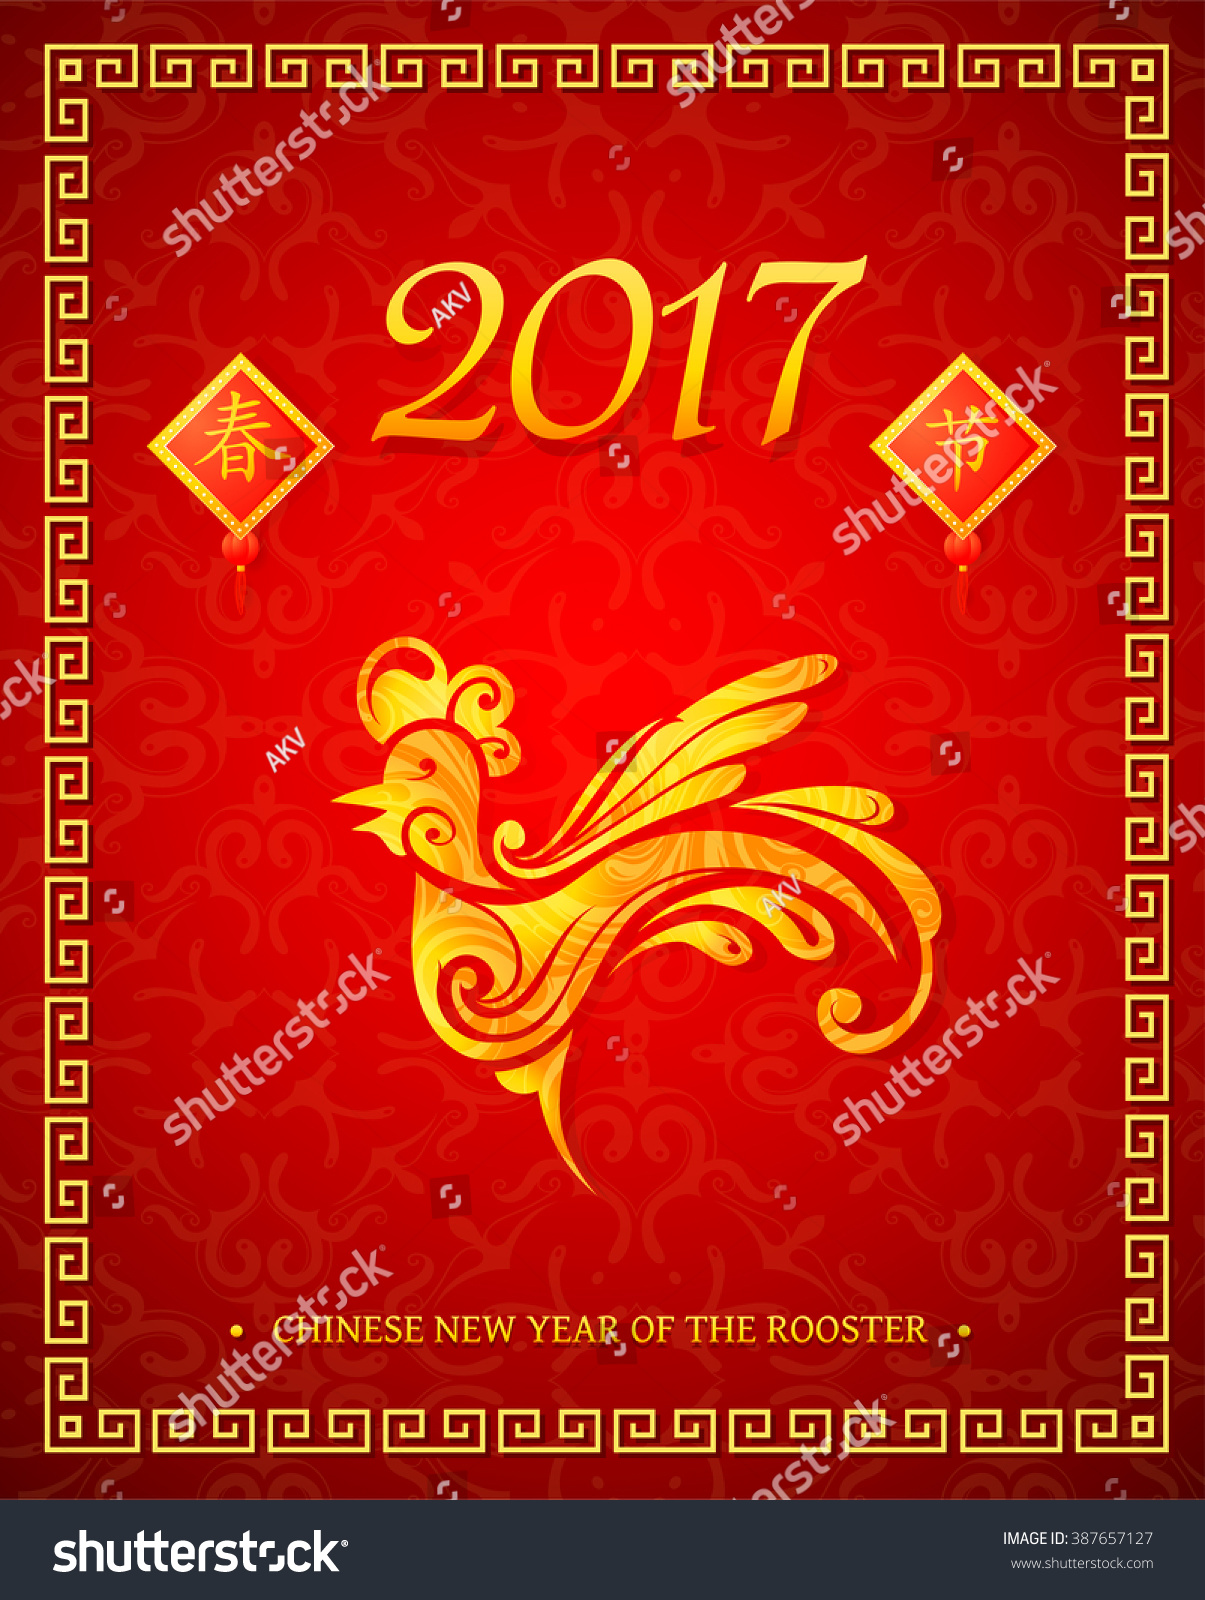 Rooster Symbol Chinese New Year 2017 Stock Vector 387657127